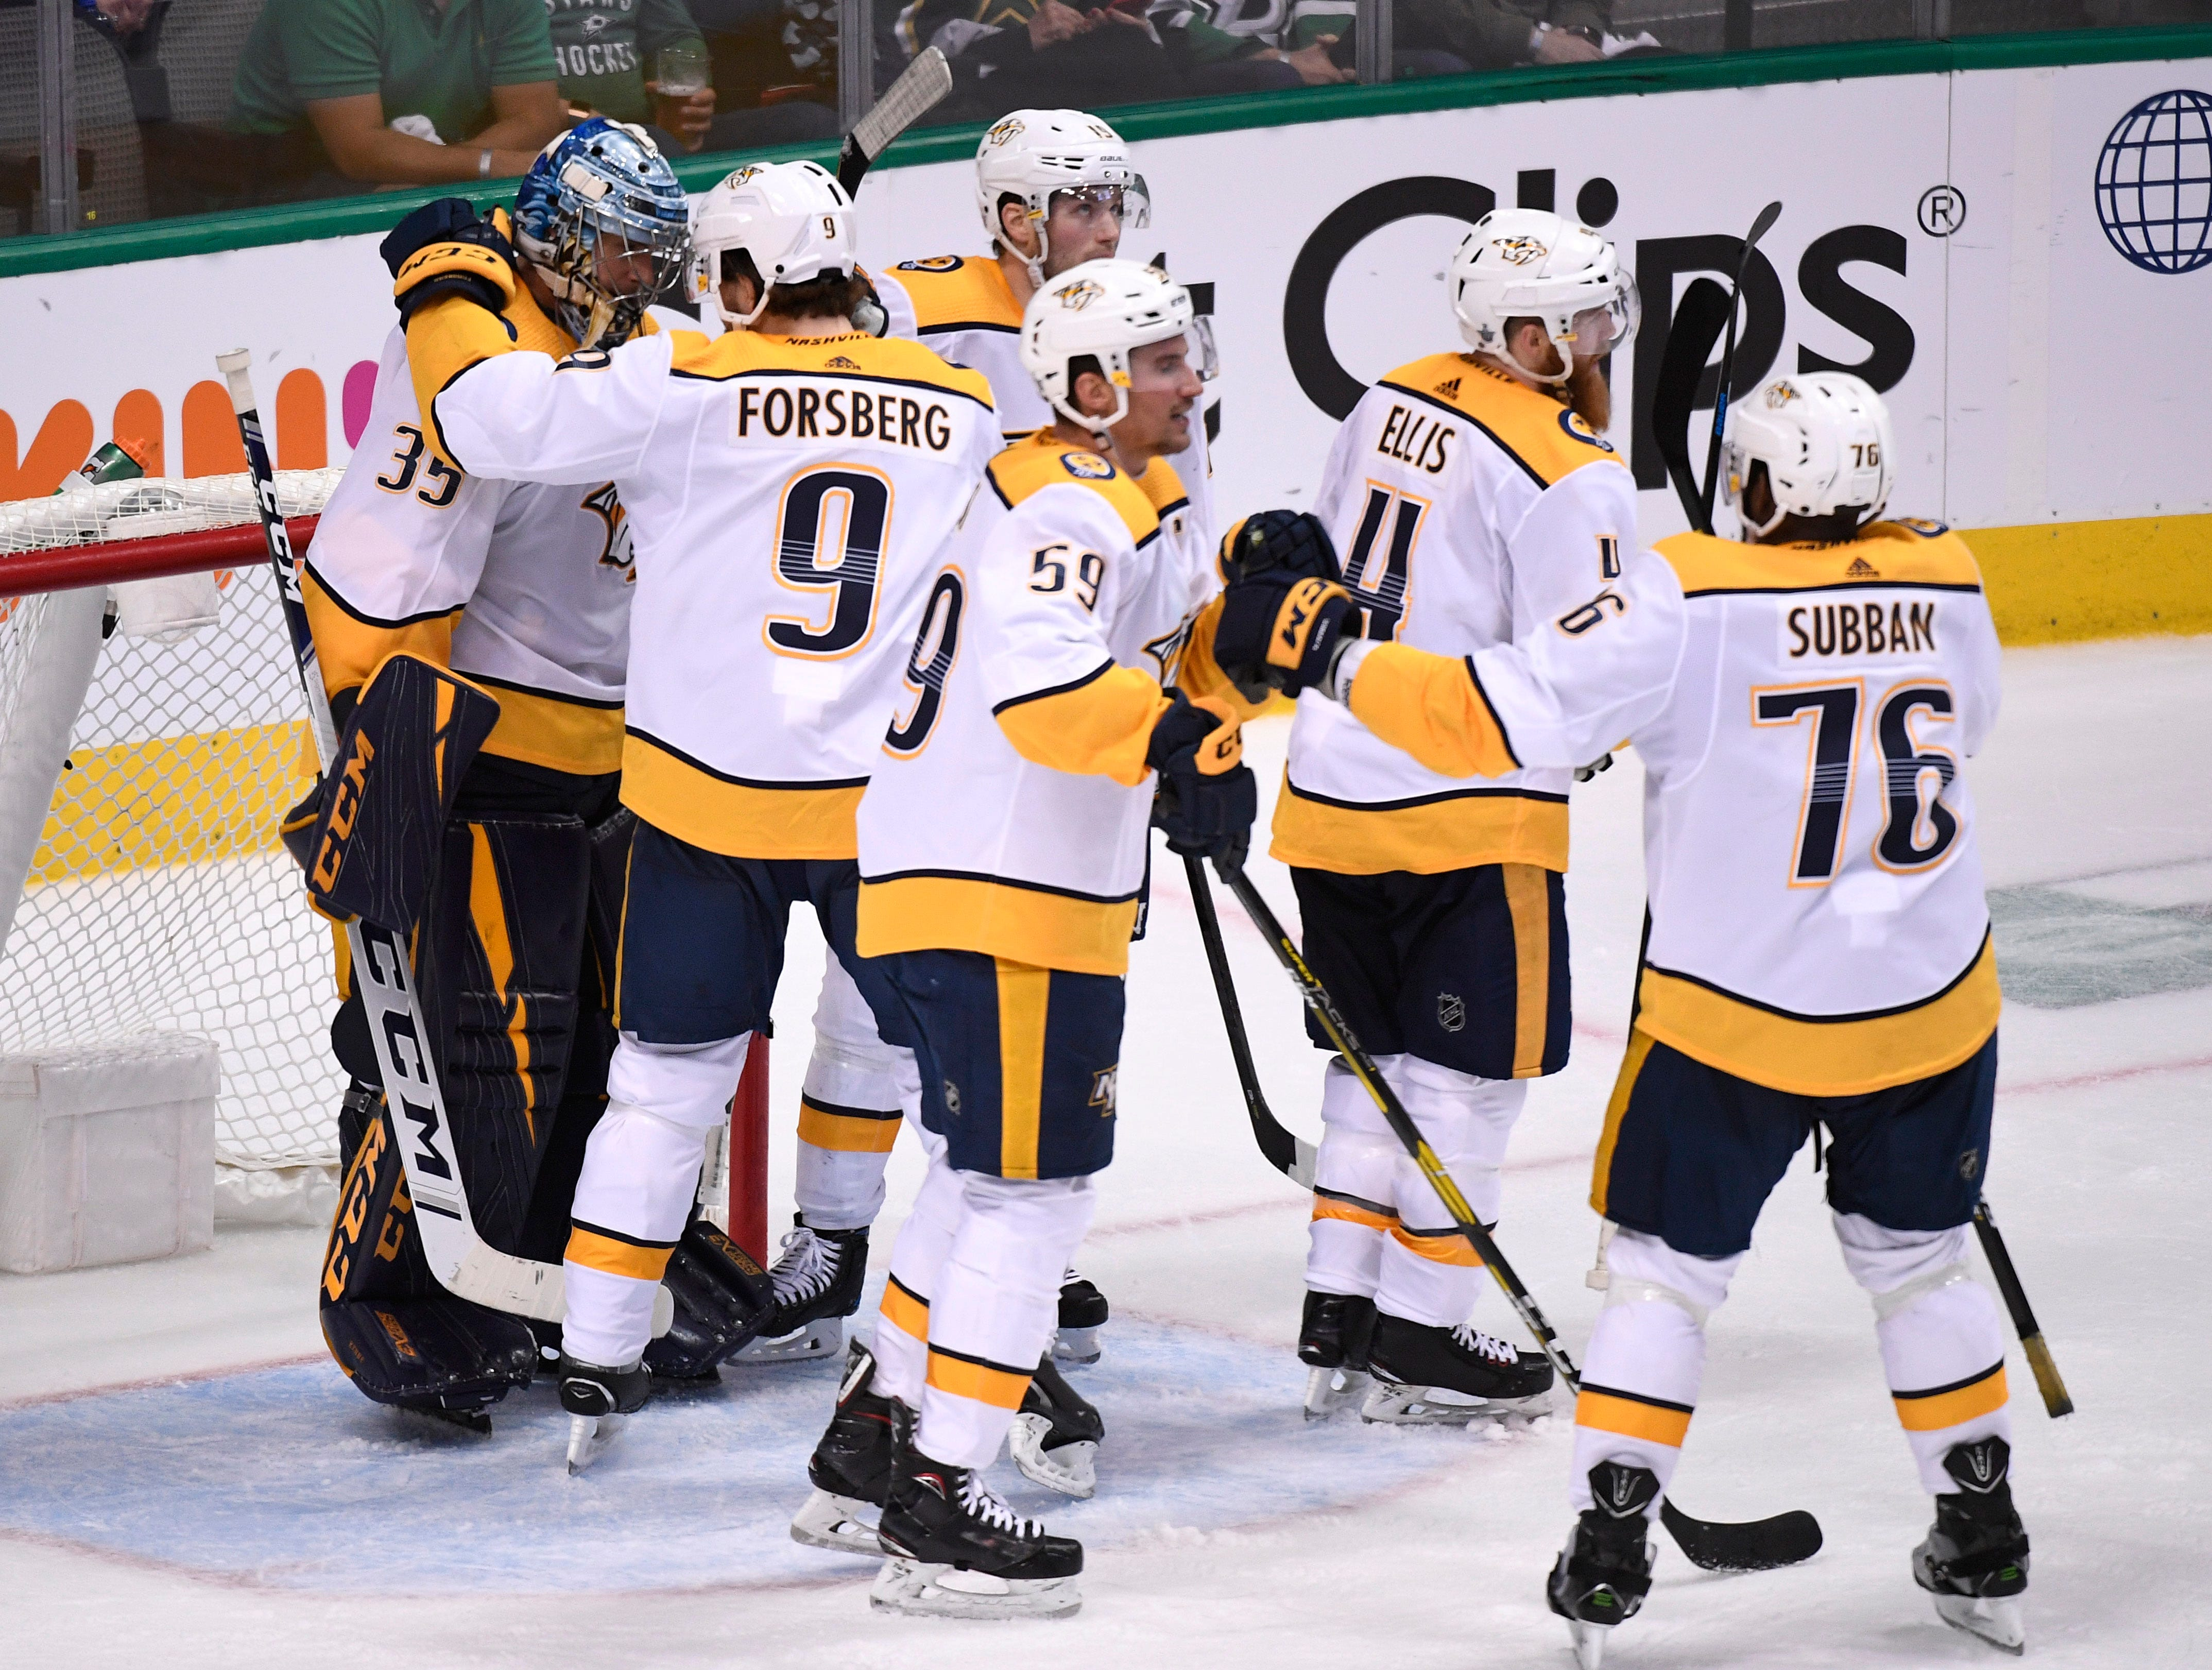 The Predators celebrate the win over the Dallas Stars with goaltender Pekka Rinne (35) in the divisional semifinal game at the American Airlines Center in Dallas, Texas., Monday, April 15, 2019.